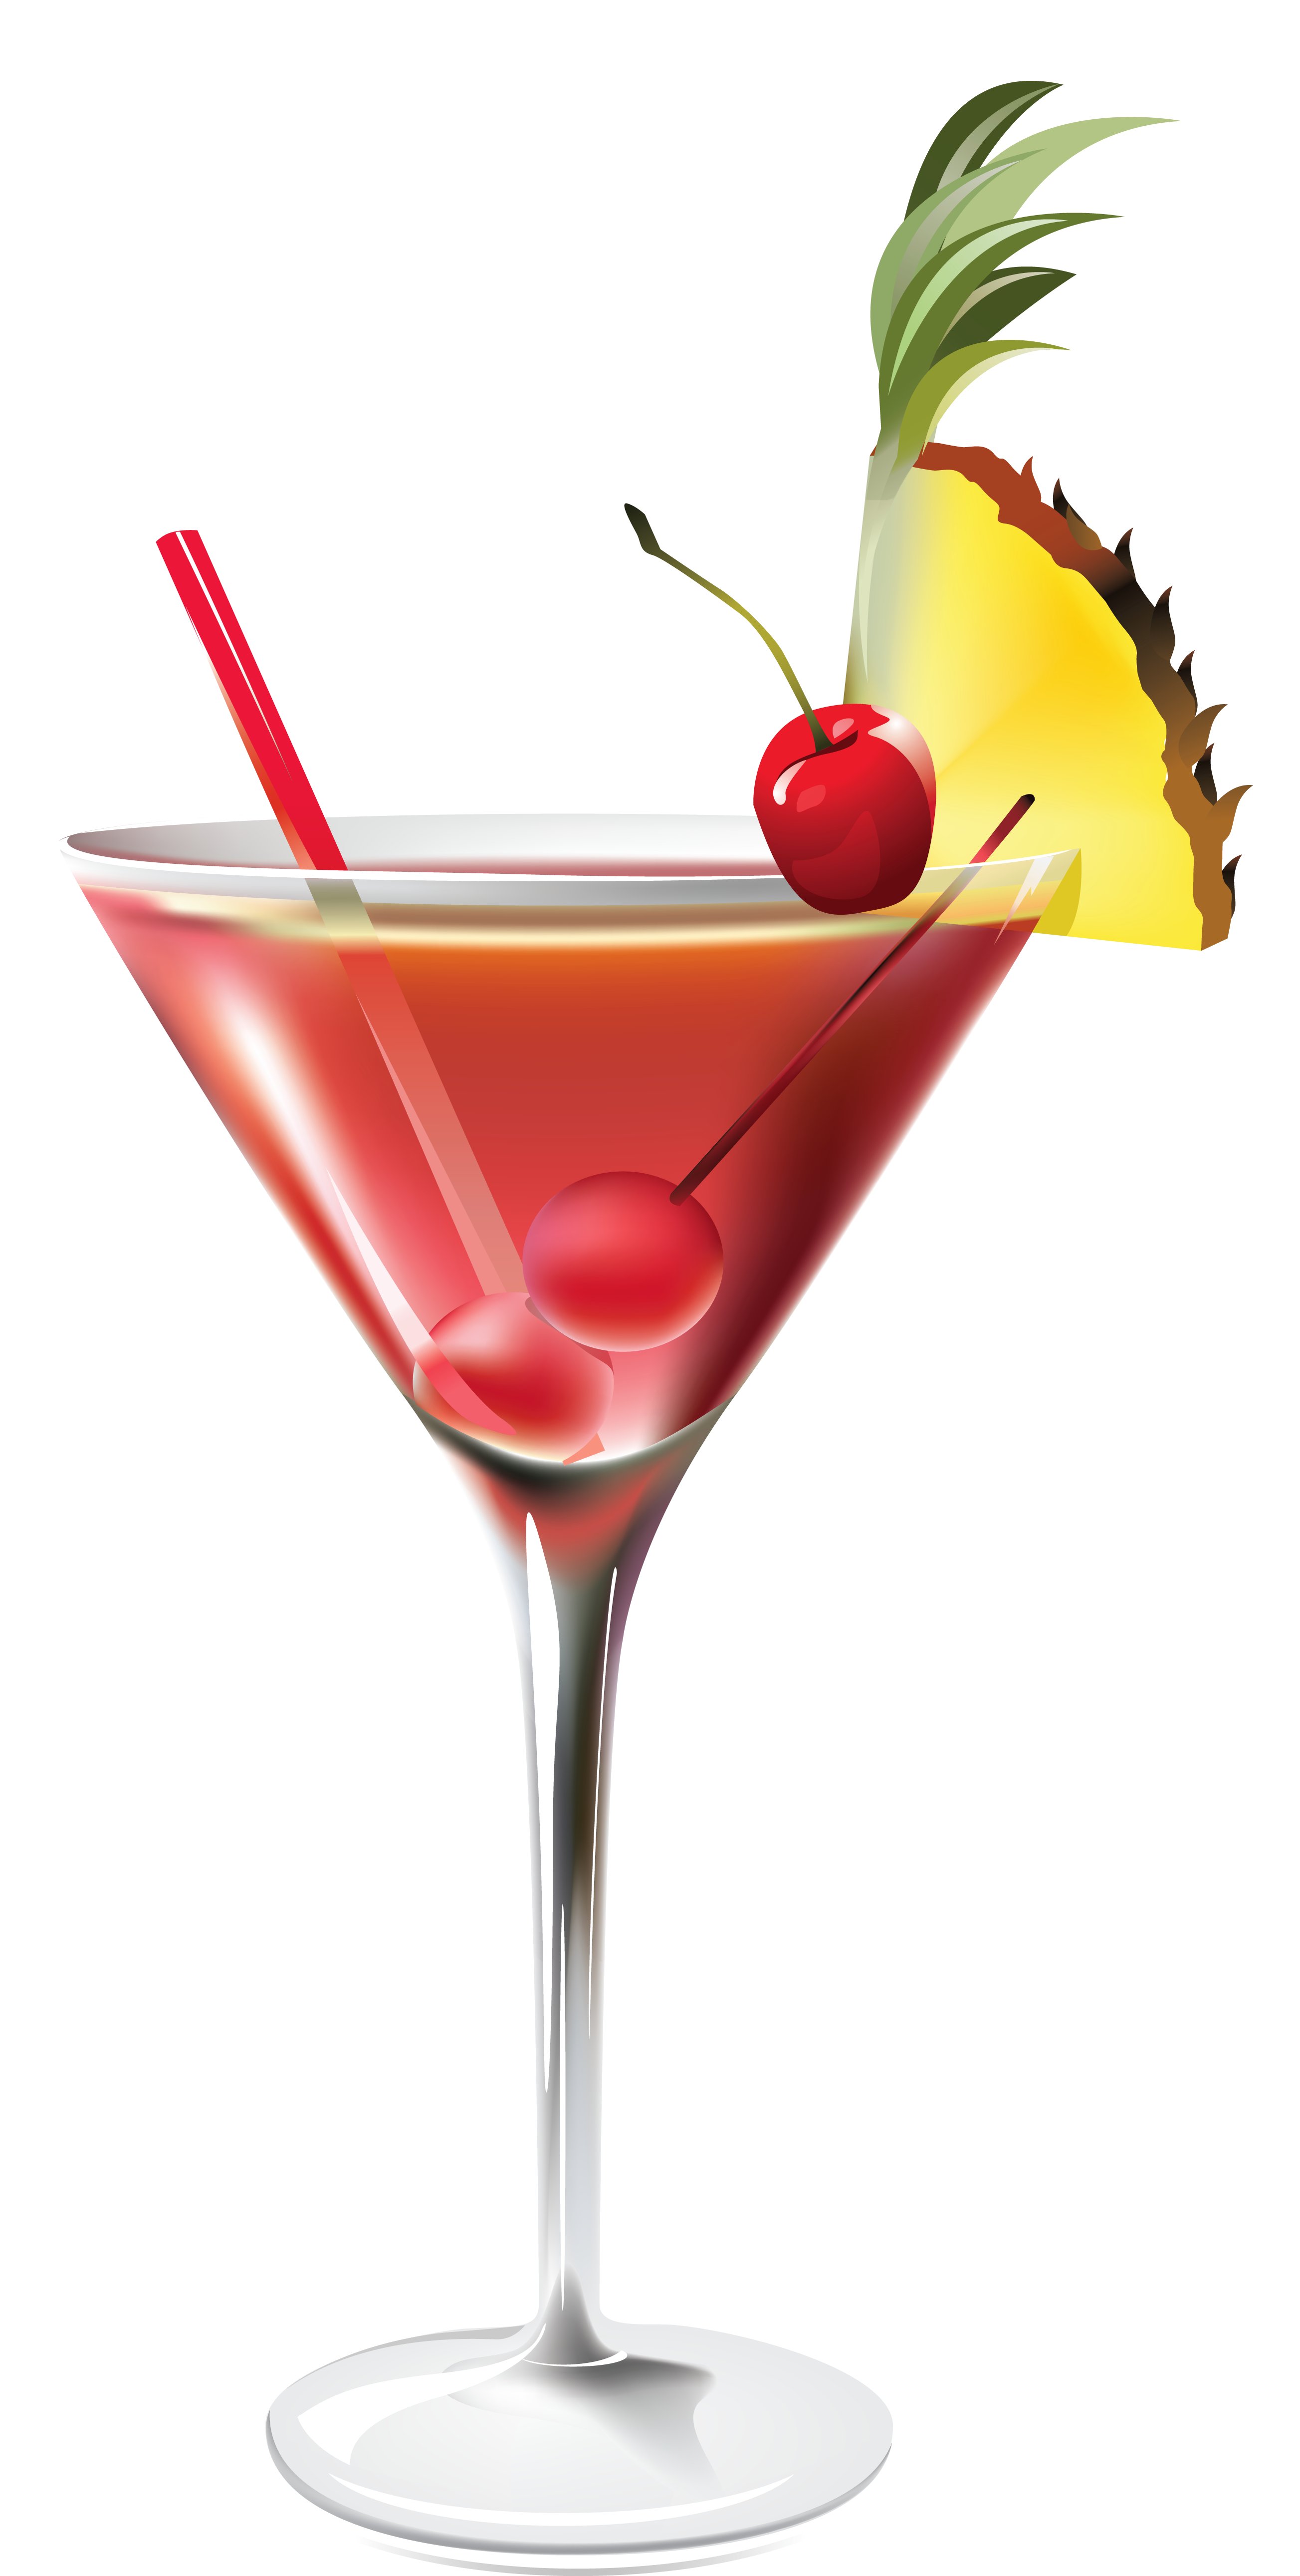 Martini png. Cocktail images free download